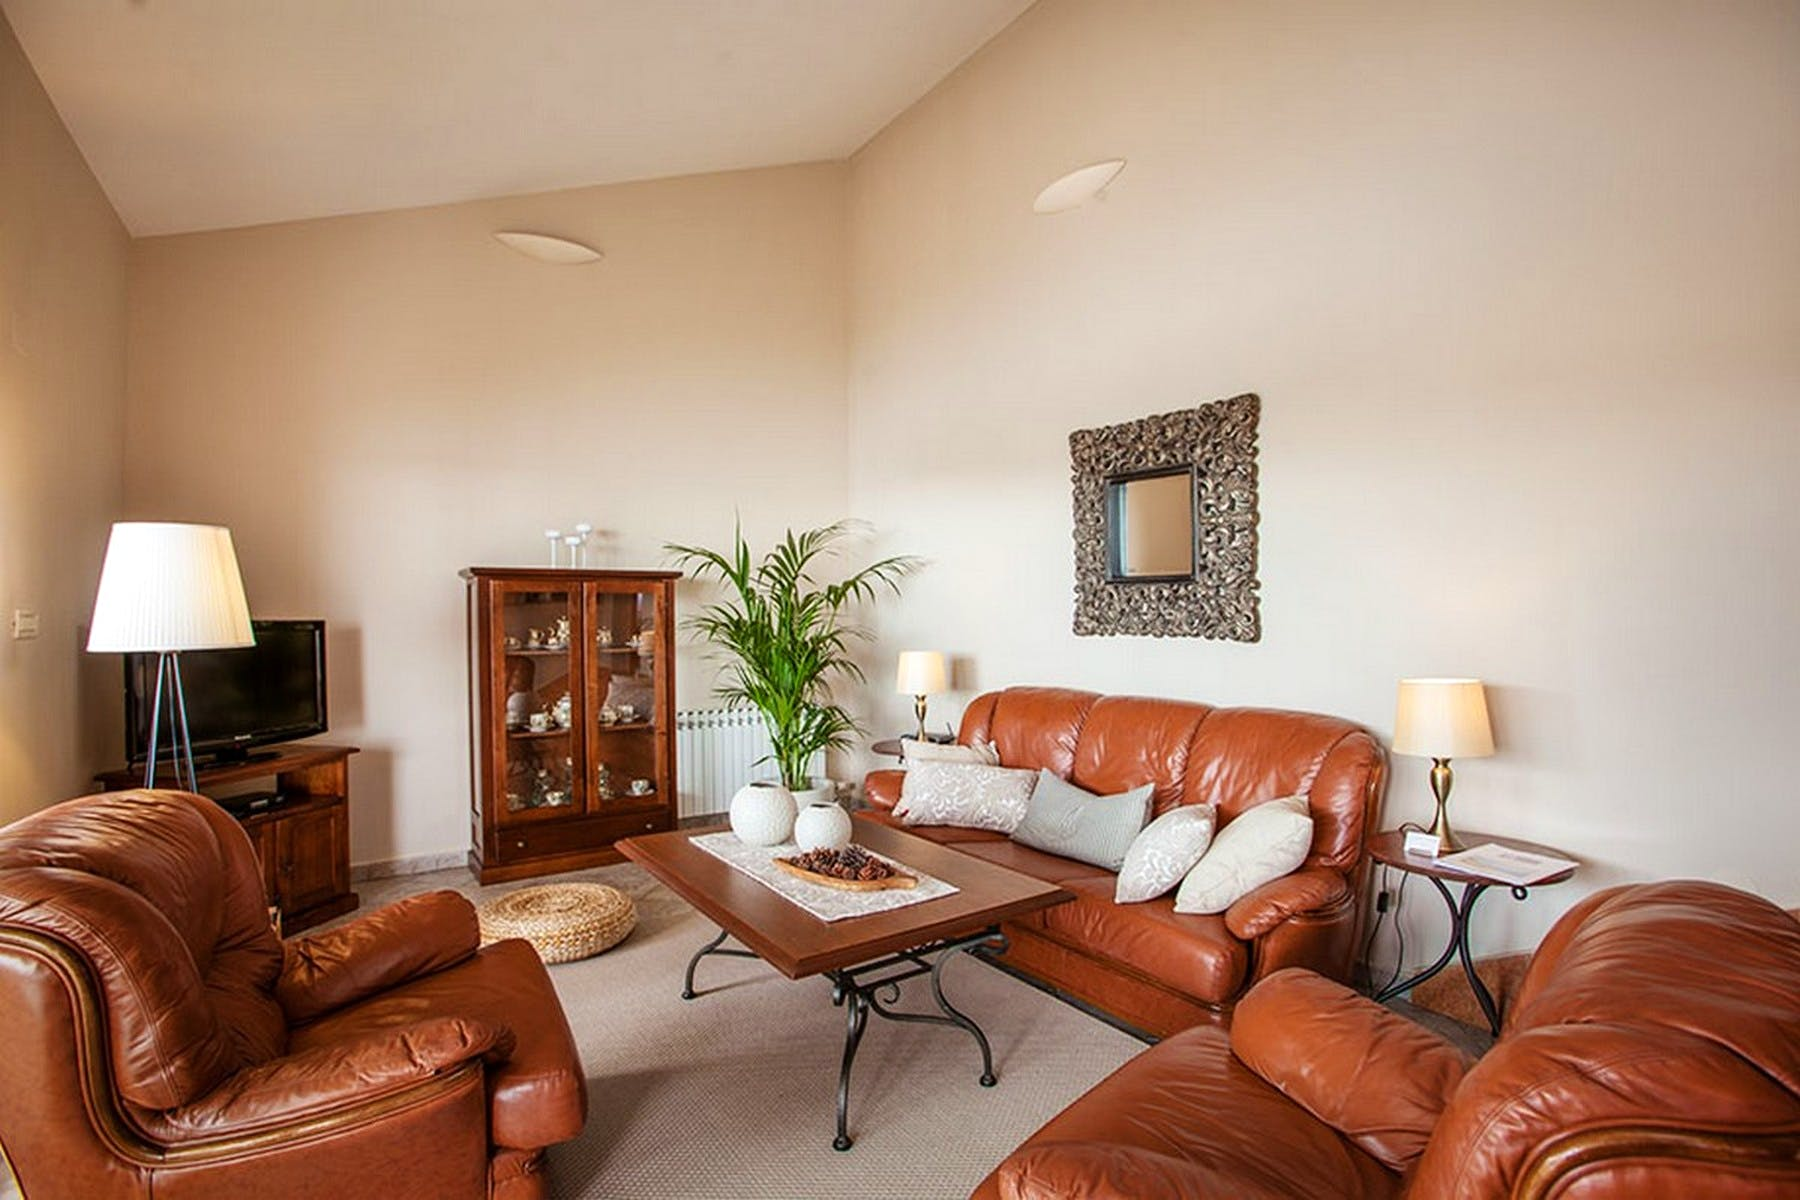 Fully furnished living area